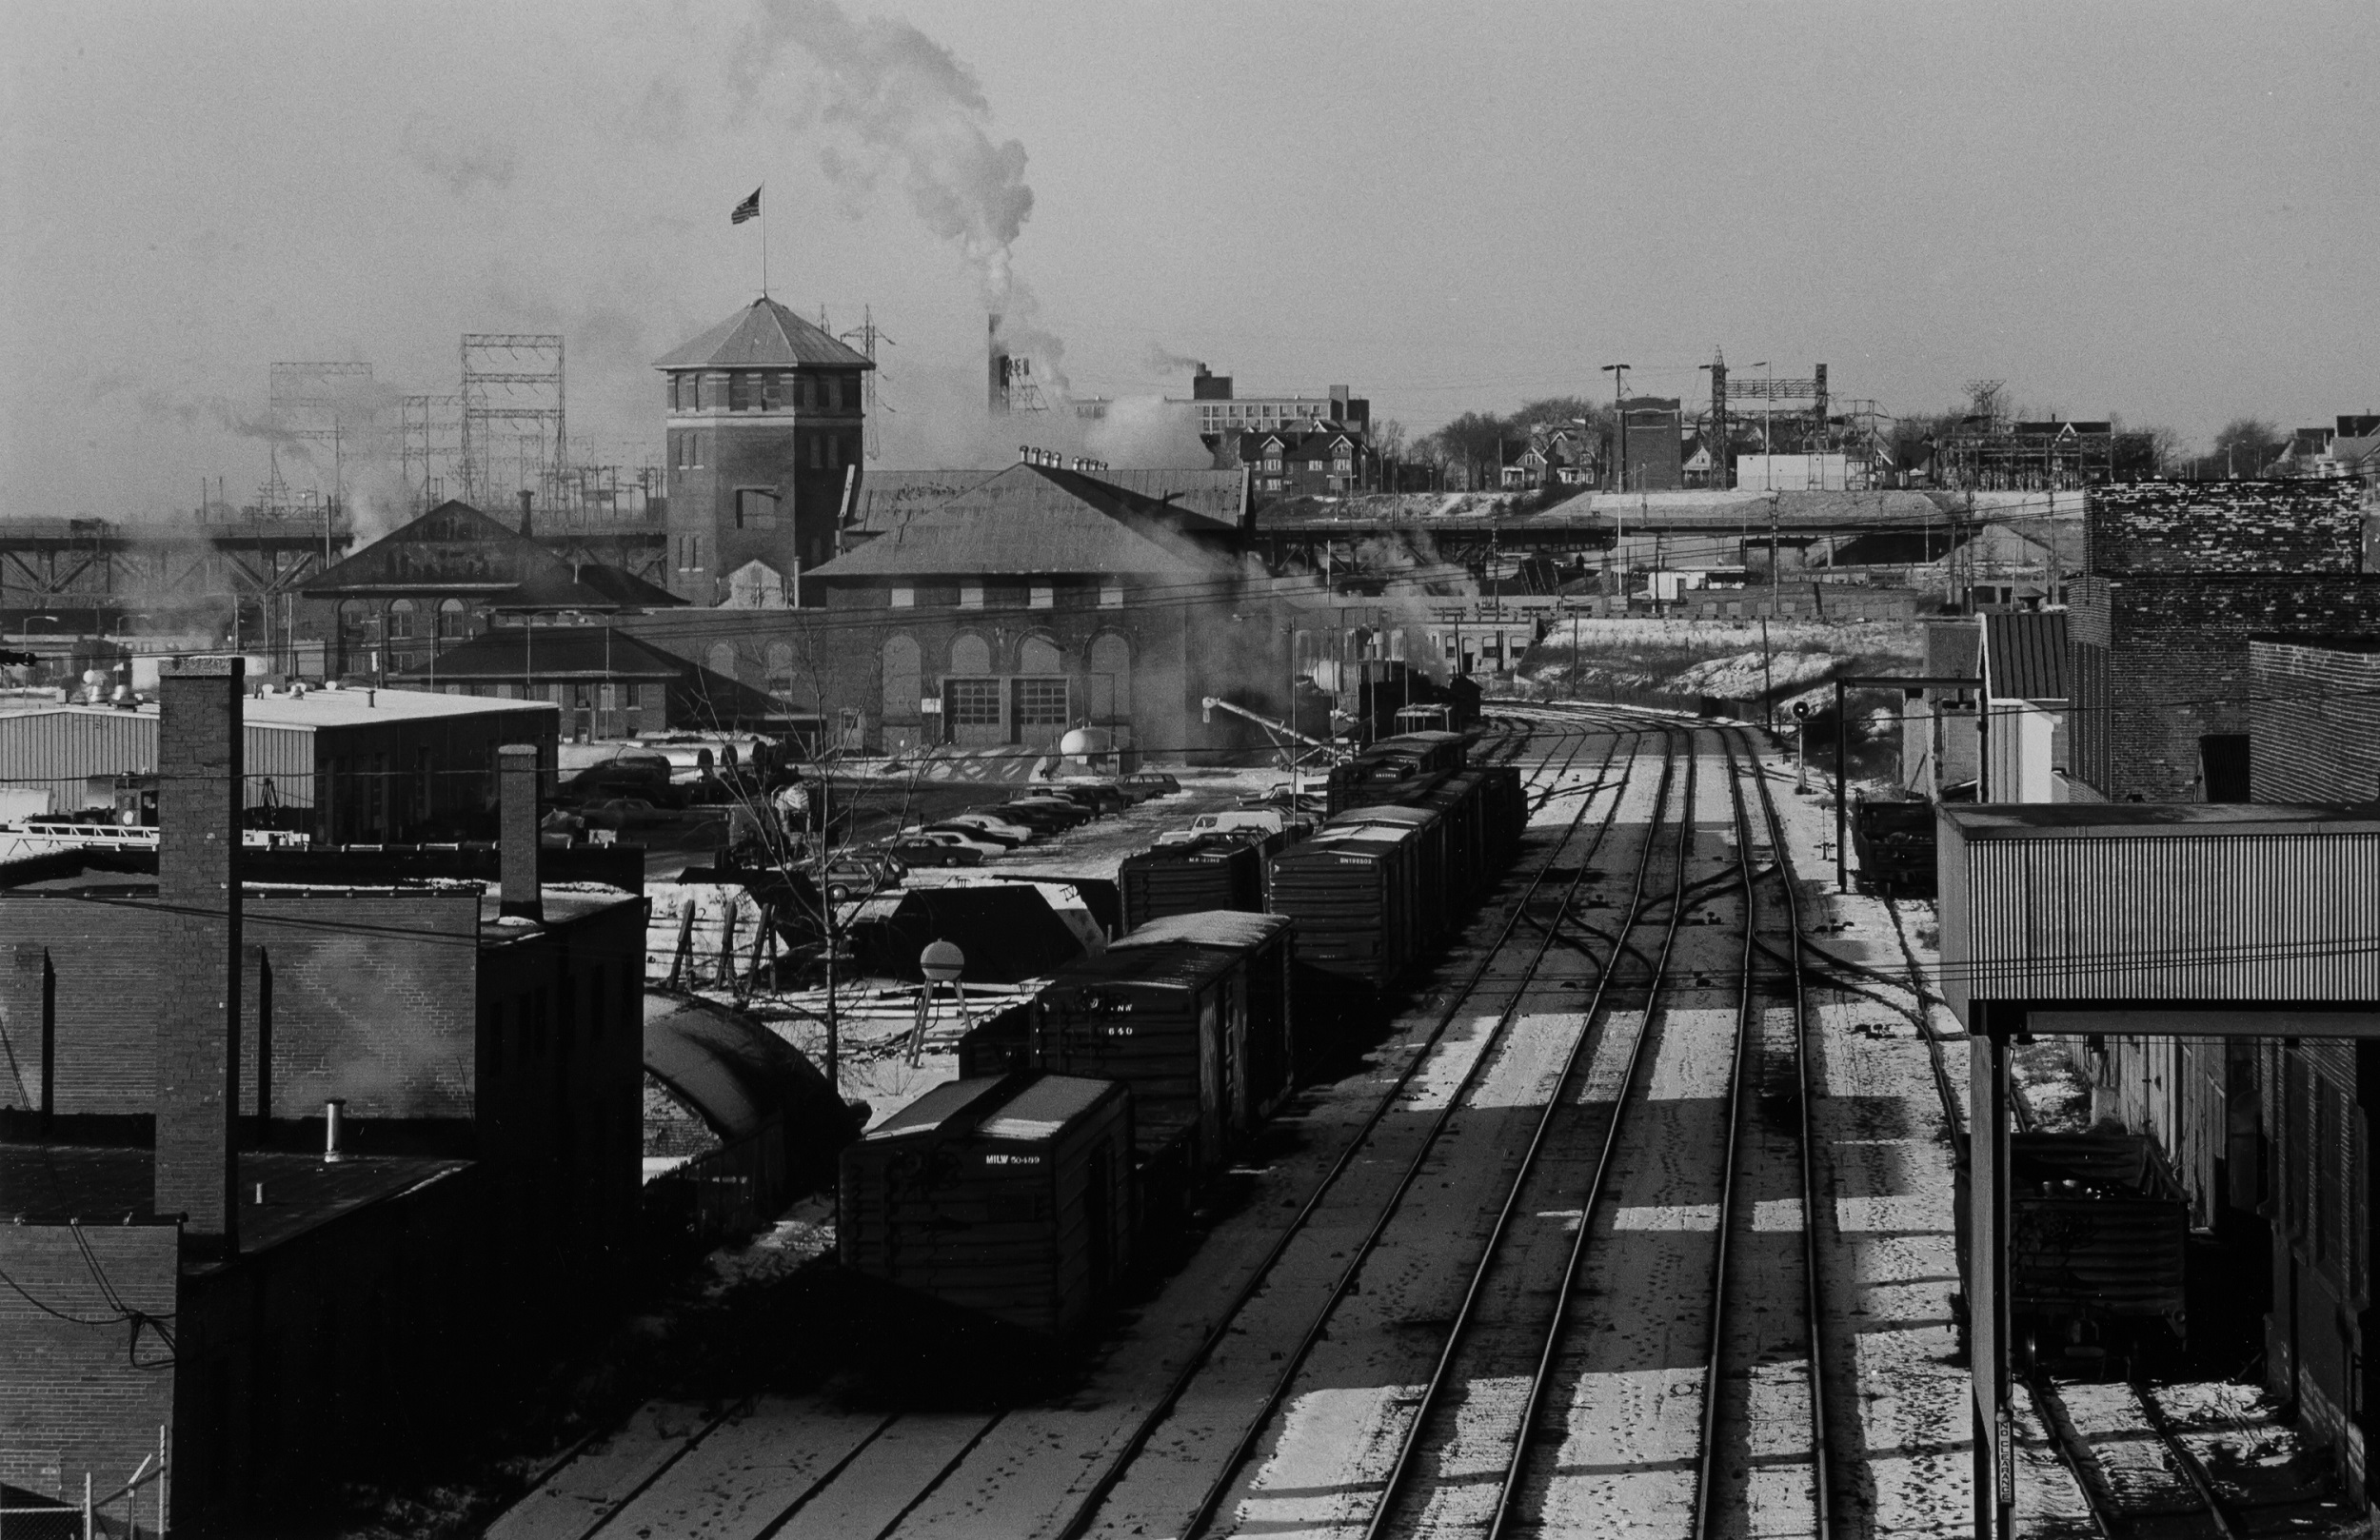 A 1972 photograph of the Menomonee Valley looking west from the 16th Street Viaduct.